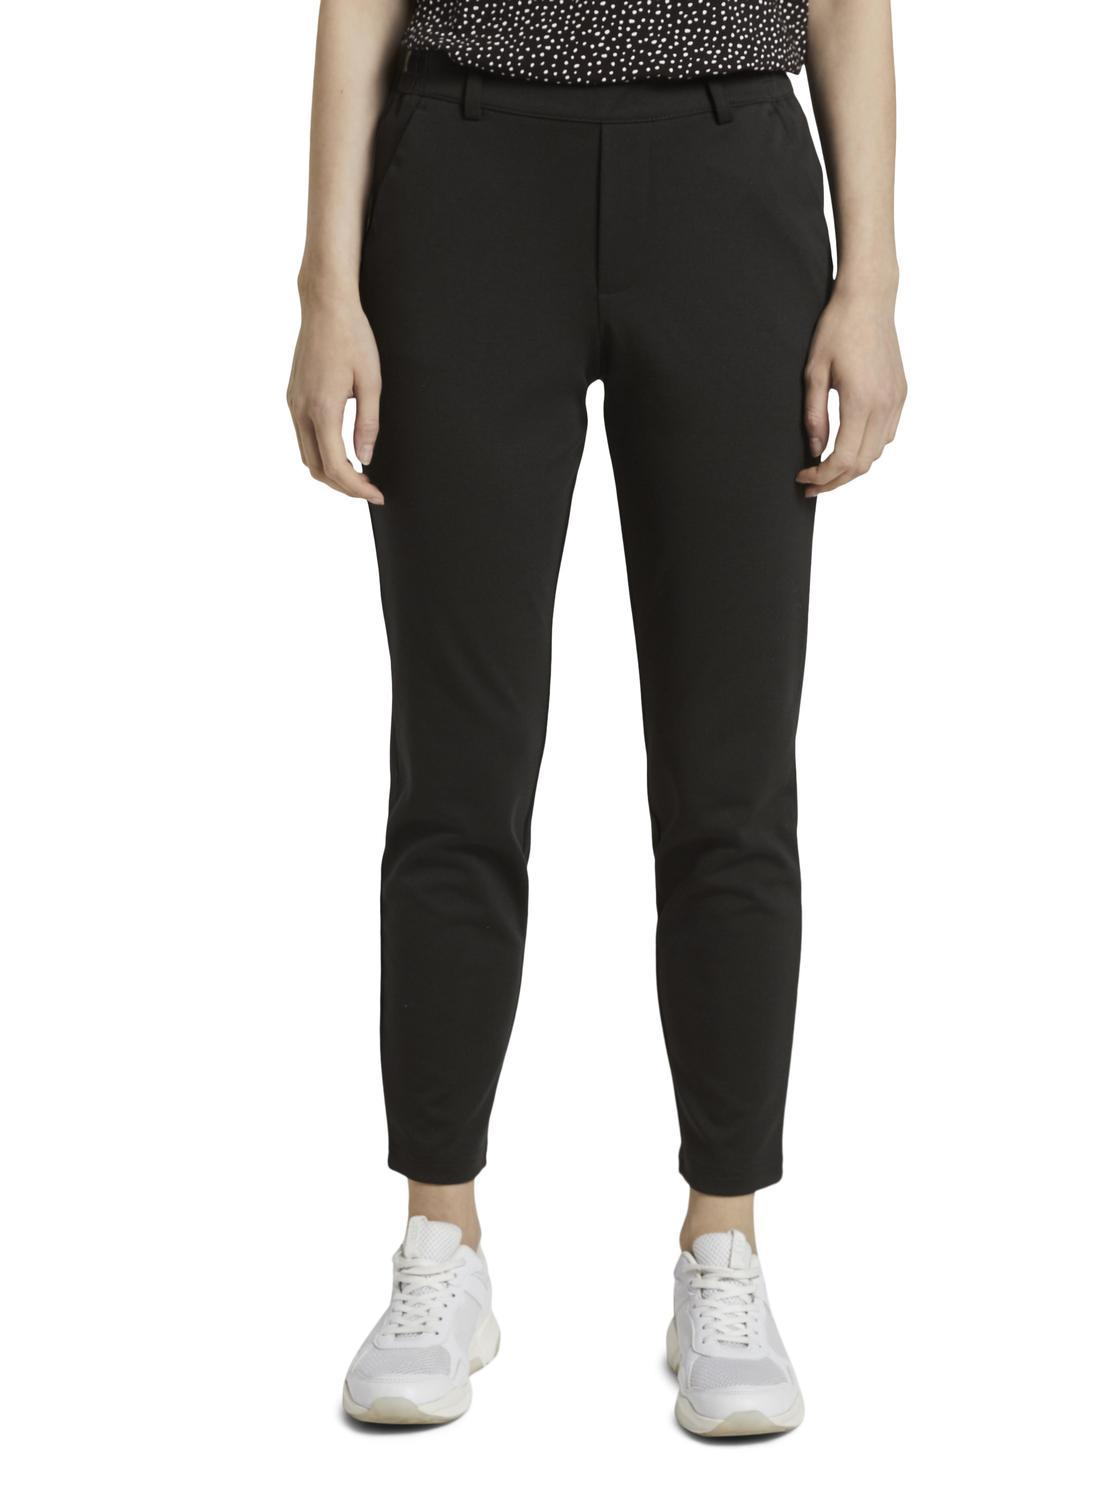 Tom Tailor 1021175 woman's pants black